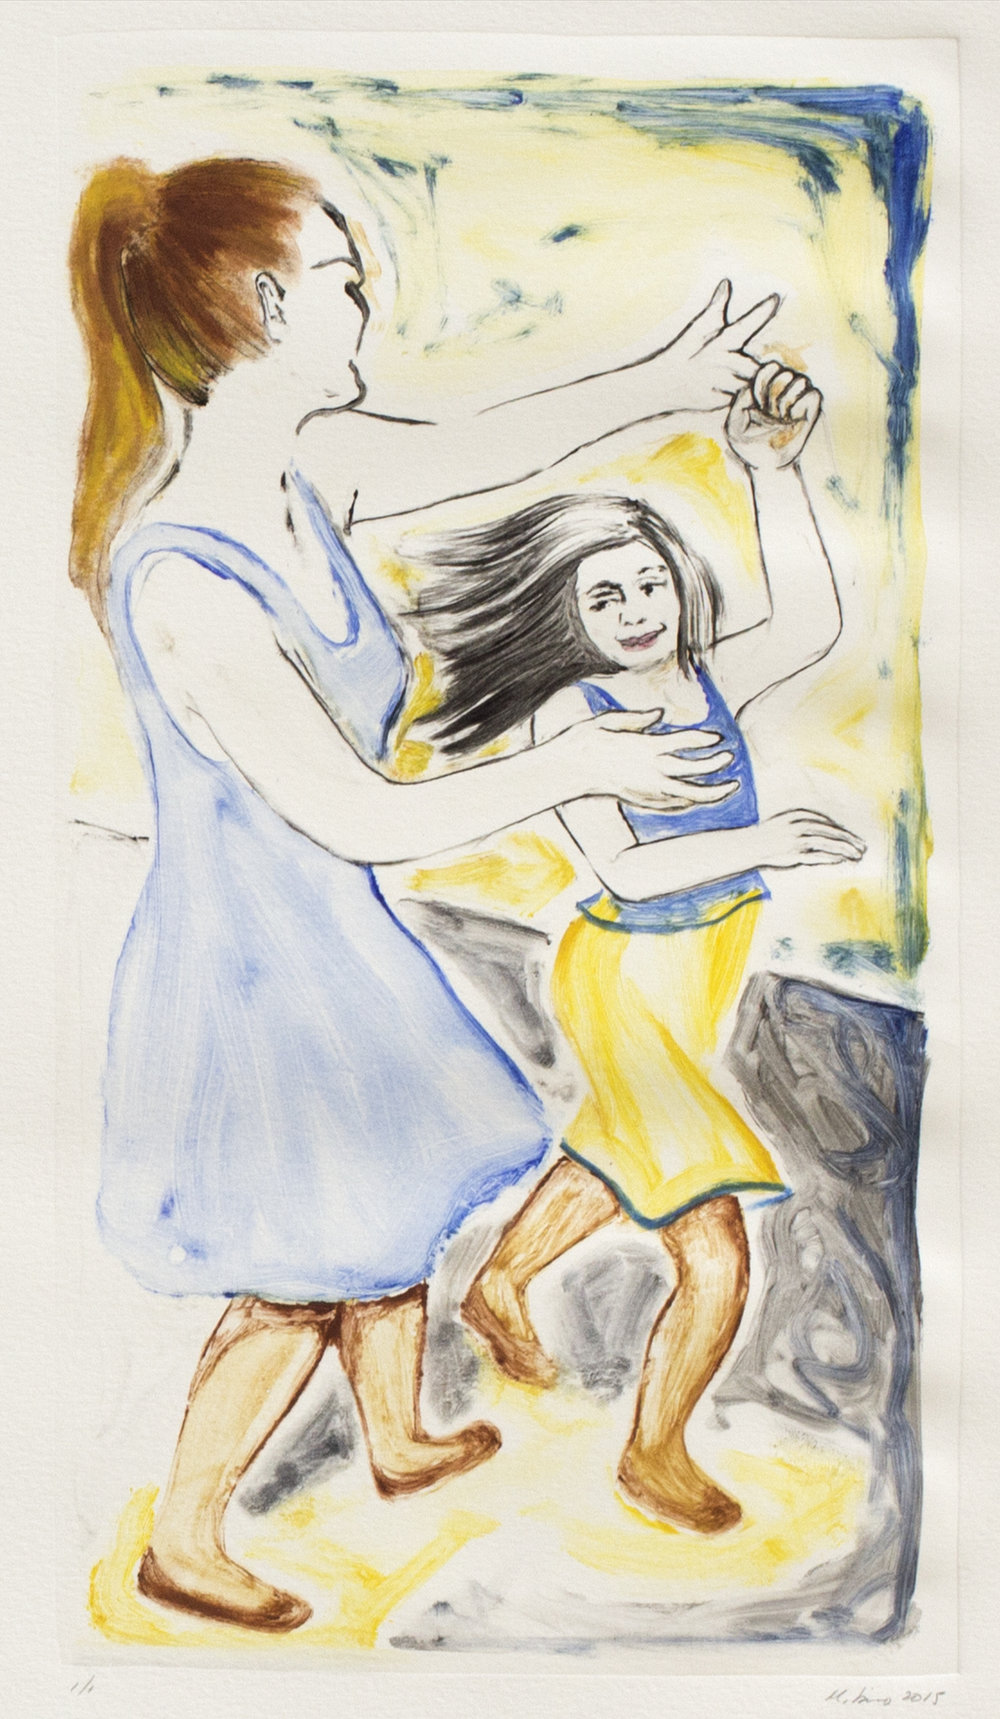 Mother and Child Dancing 1, 2015